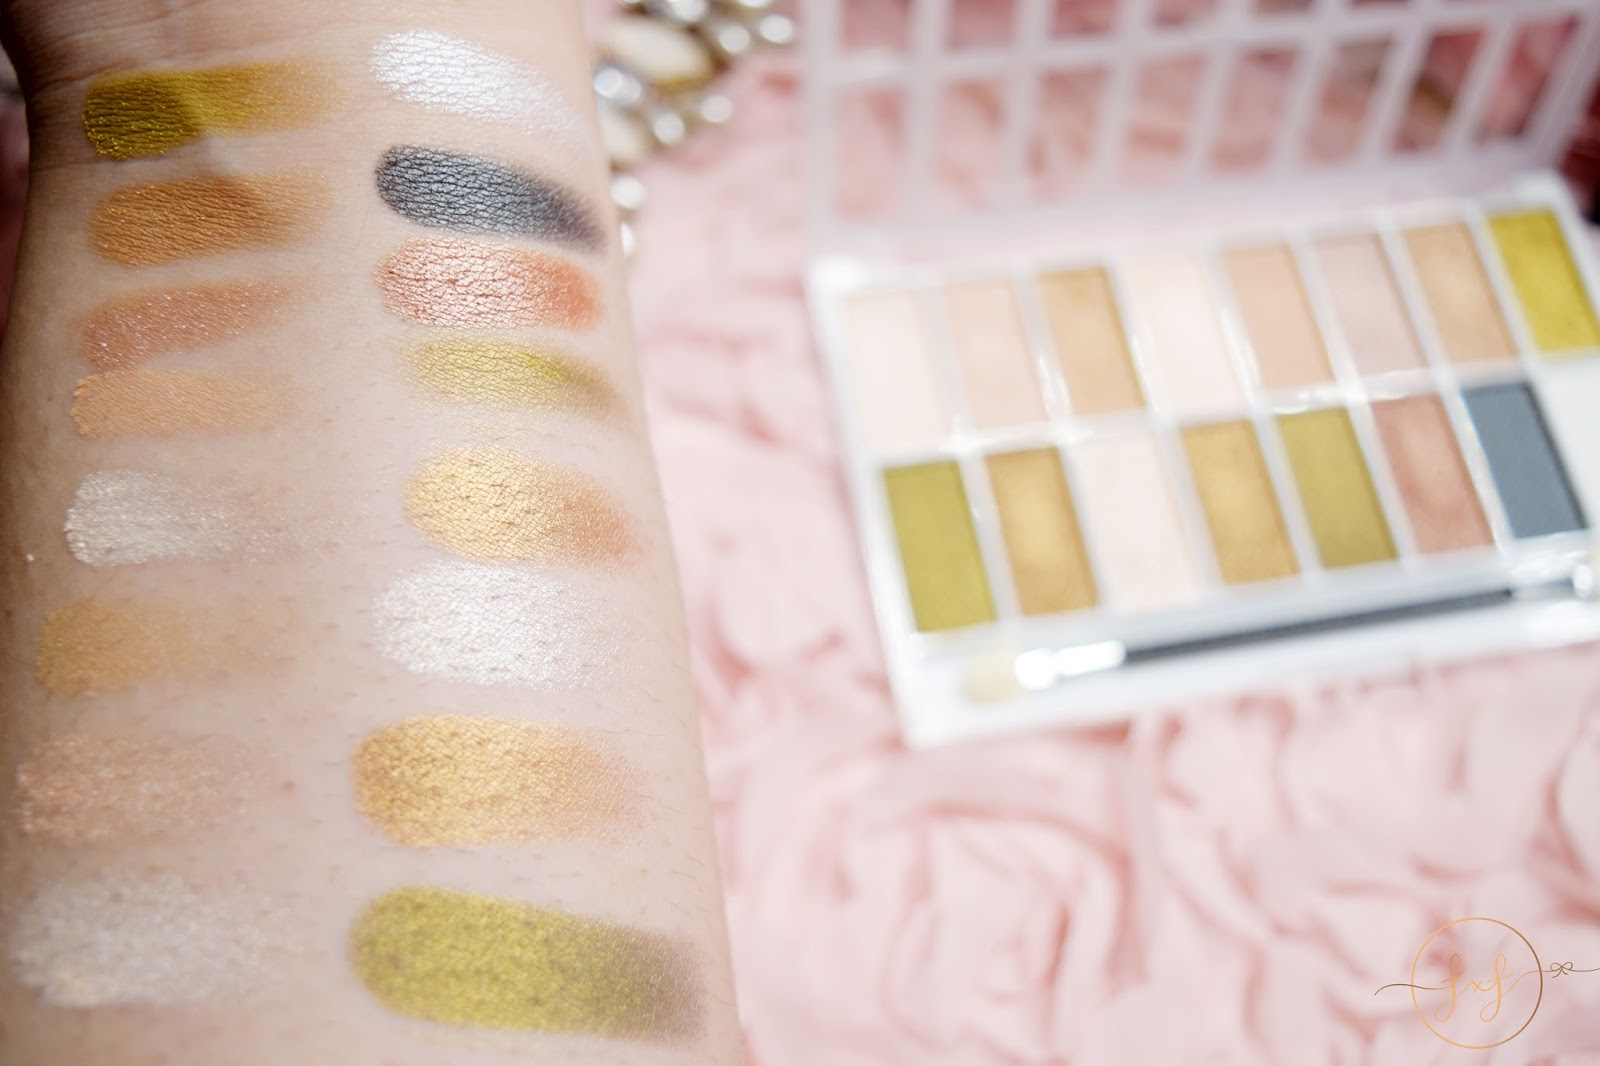 La Colors 16 Color Eyeshadow Palette In Sweet Review Swatches